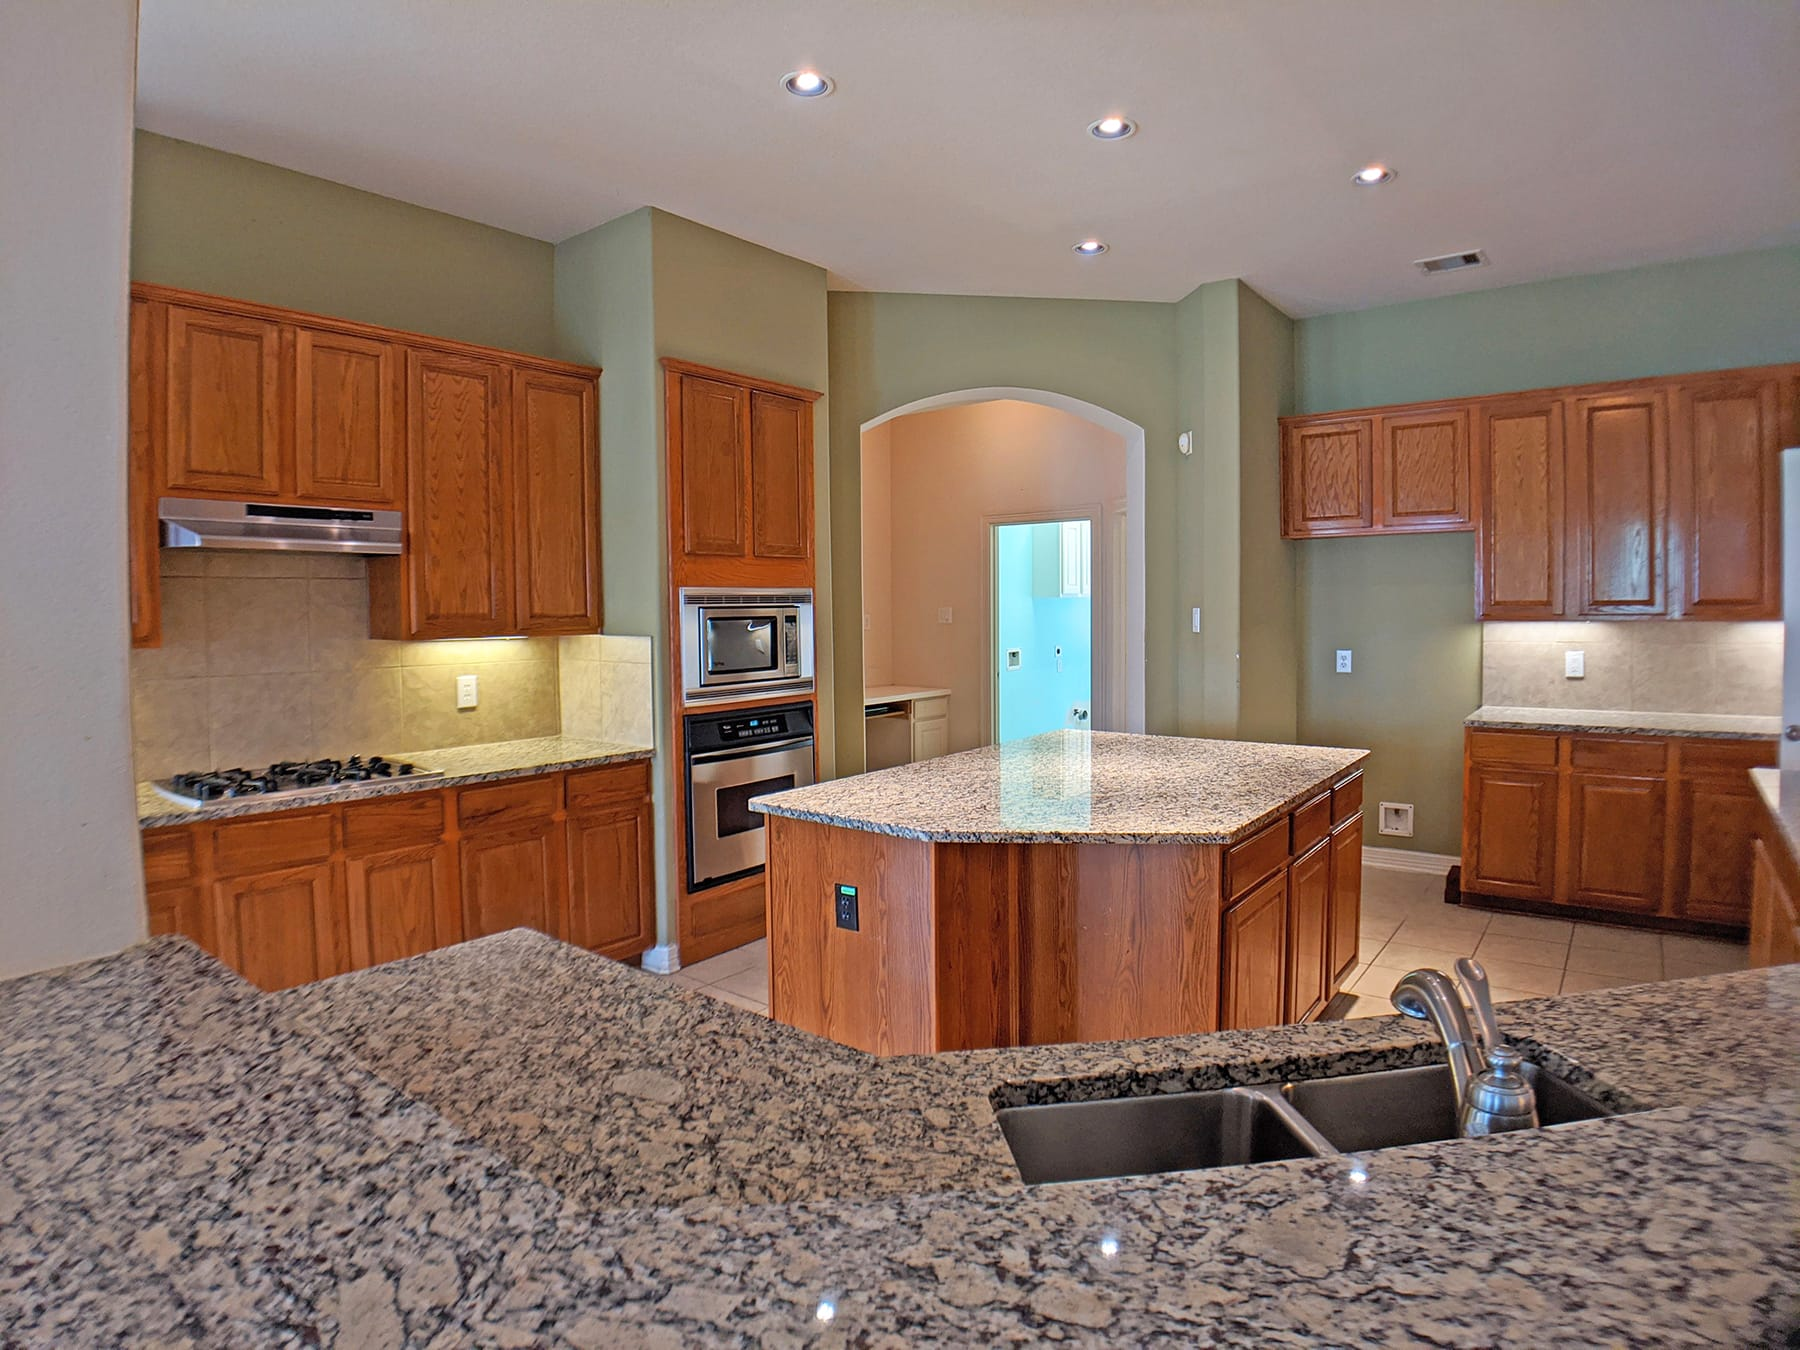 Pearland_Kitchen